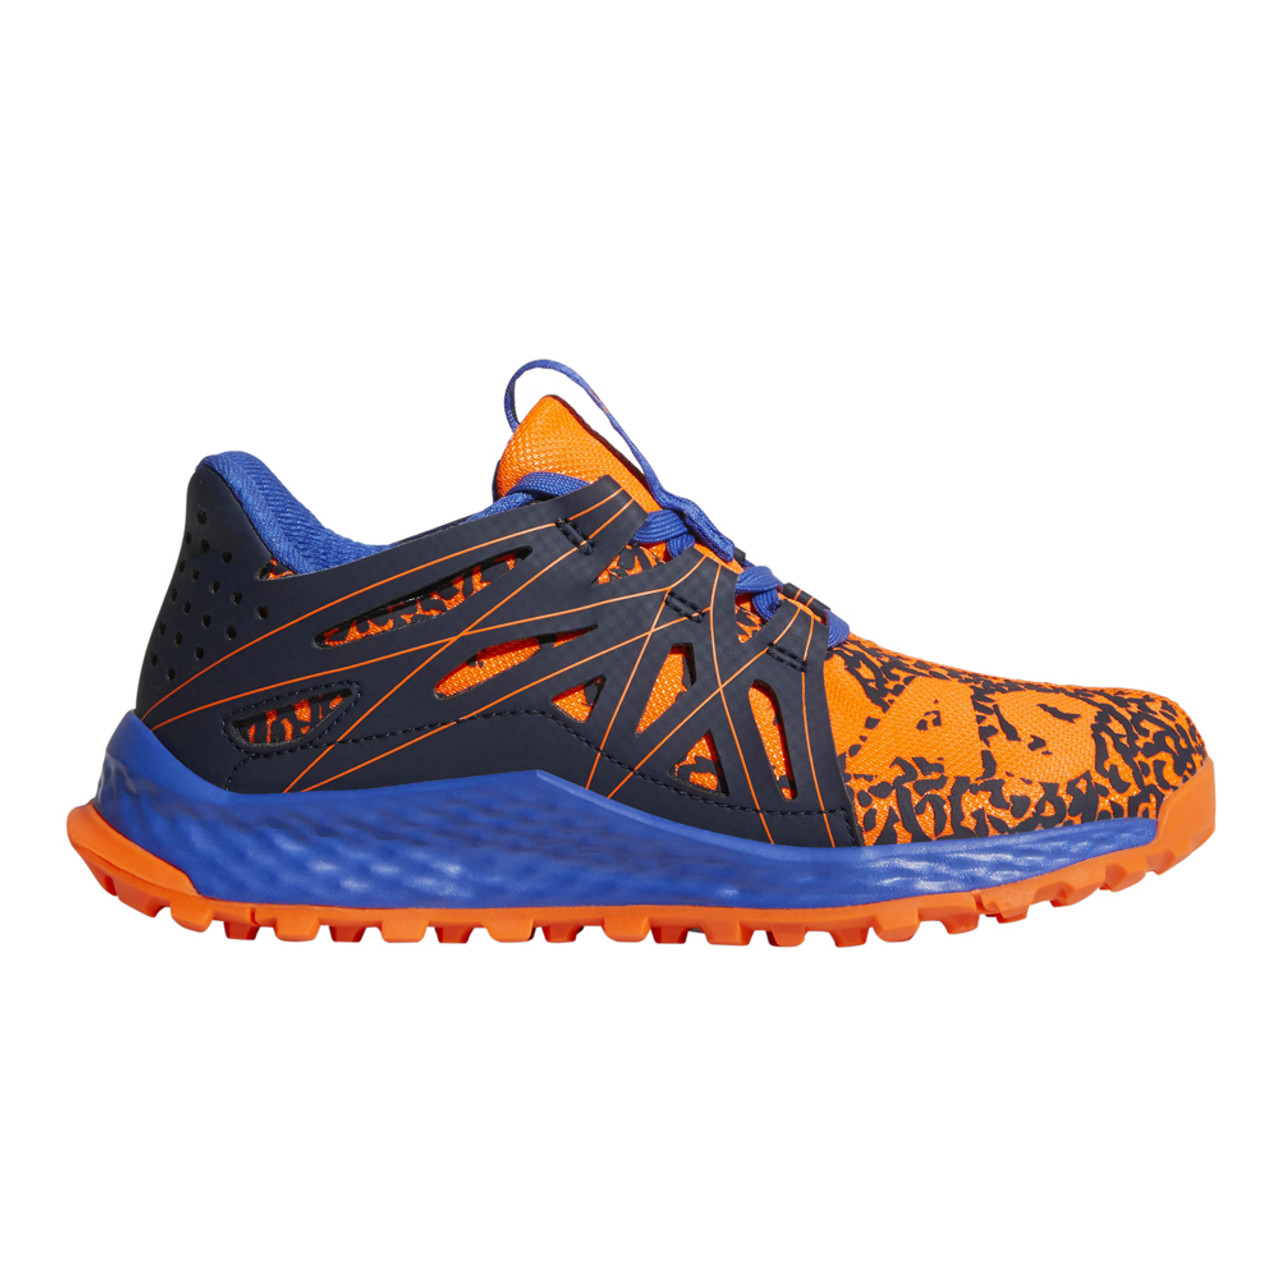 a1146955b Adidas Boy s Vigor Bounce Athletic Shoe Orange Navy - Shop now   Shoolu.com